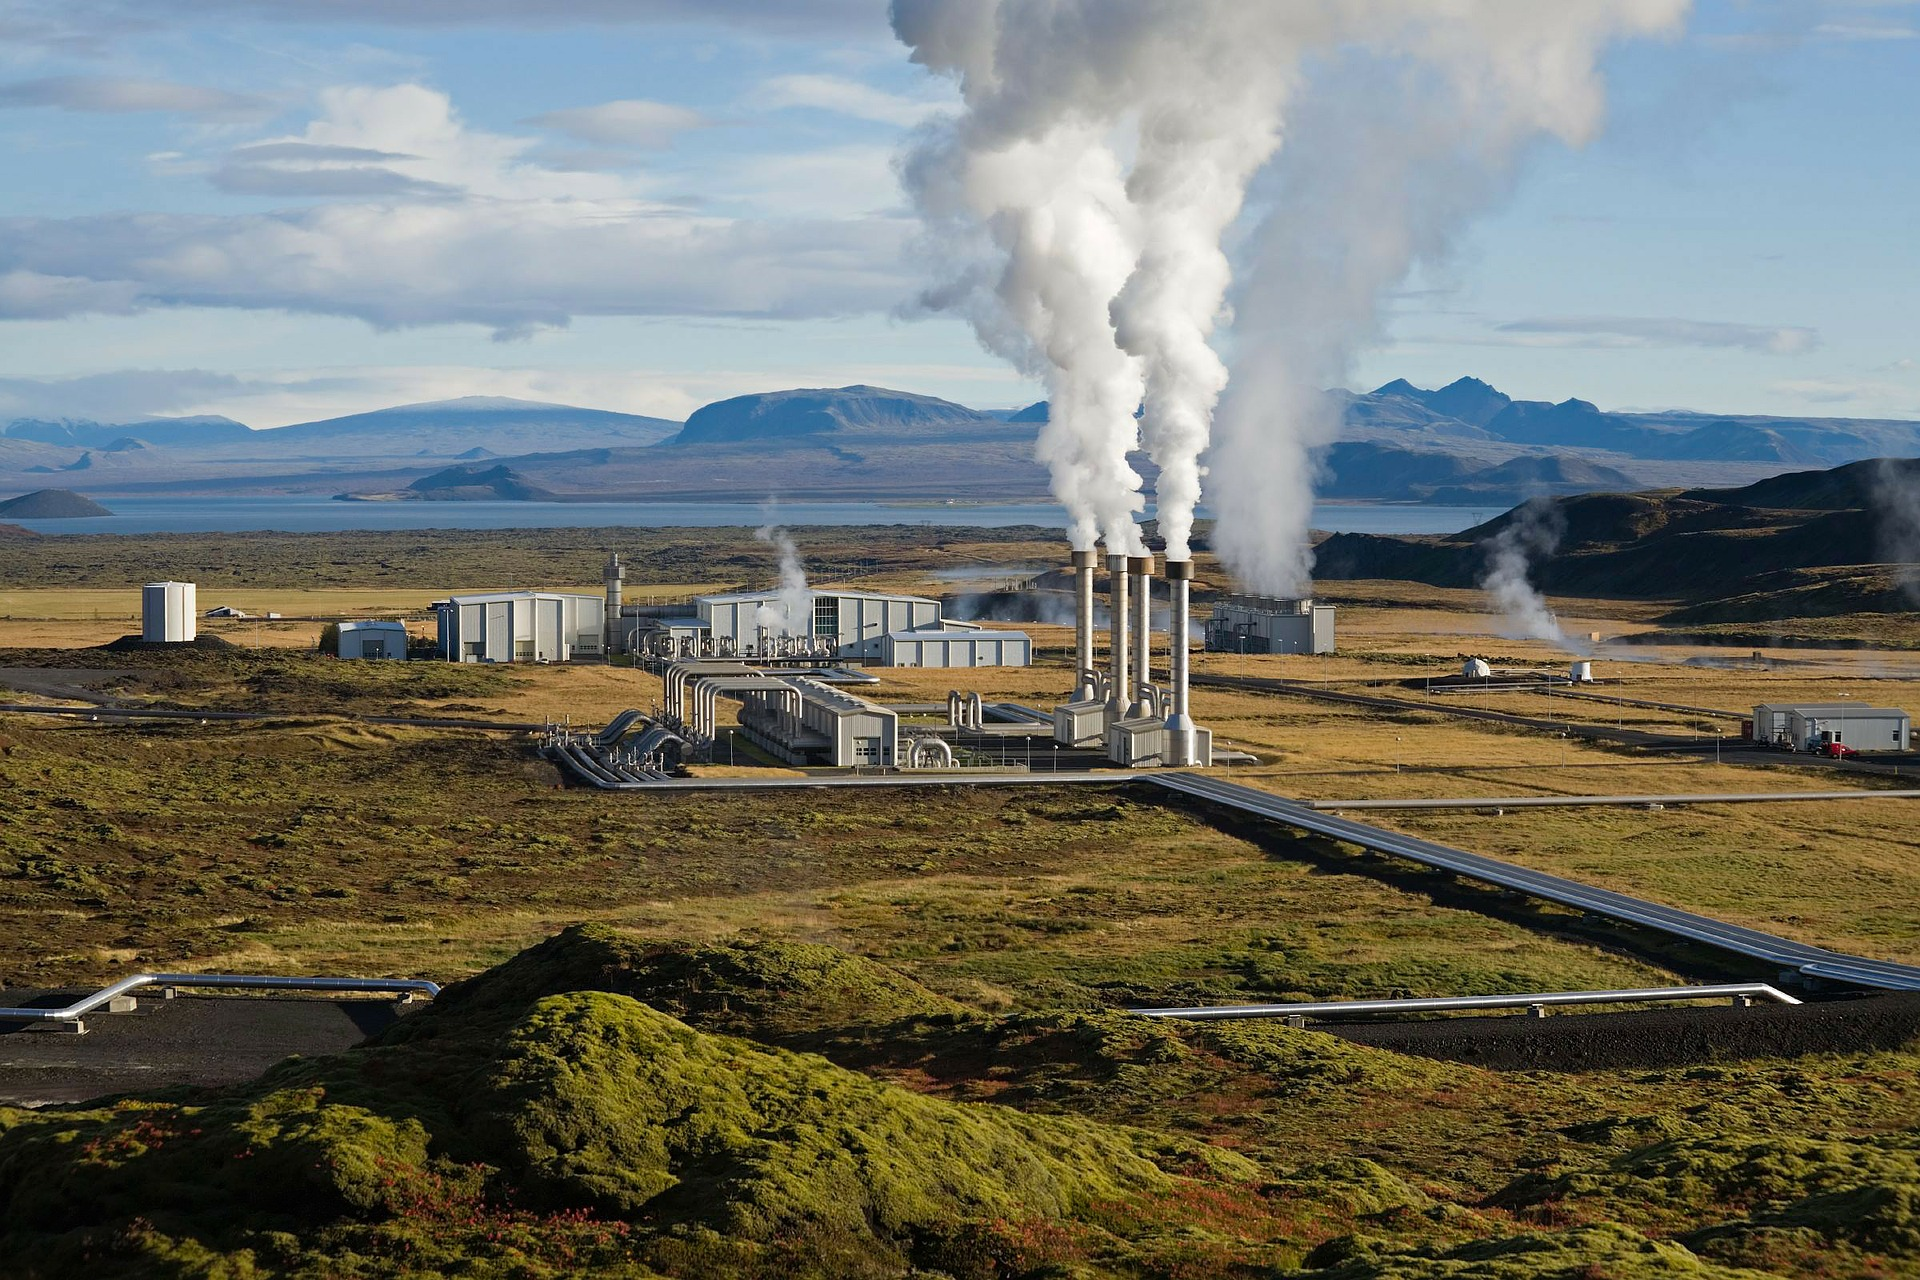 geothermal plant in Iceland, green plains, clear blue sky and mountains on the background